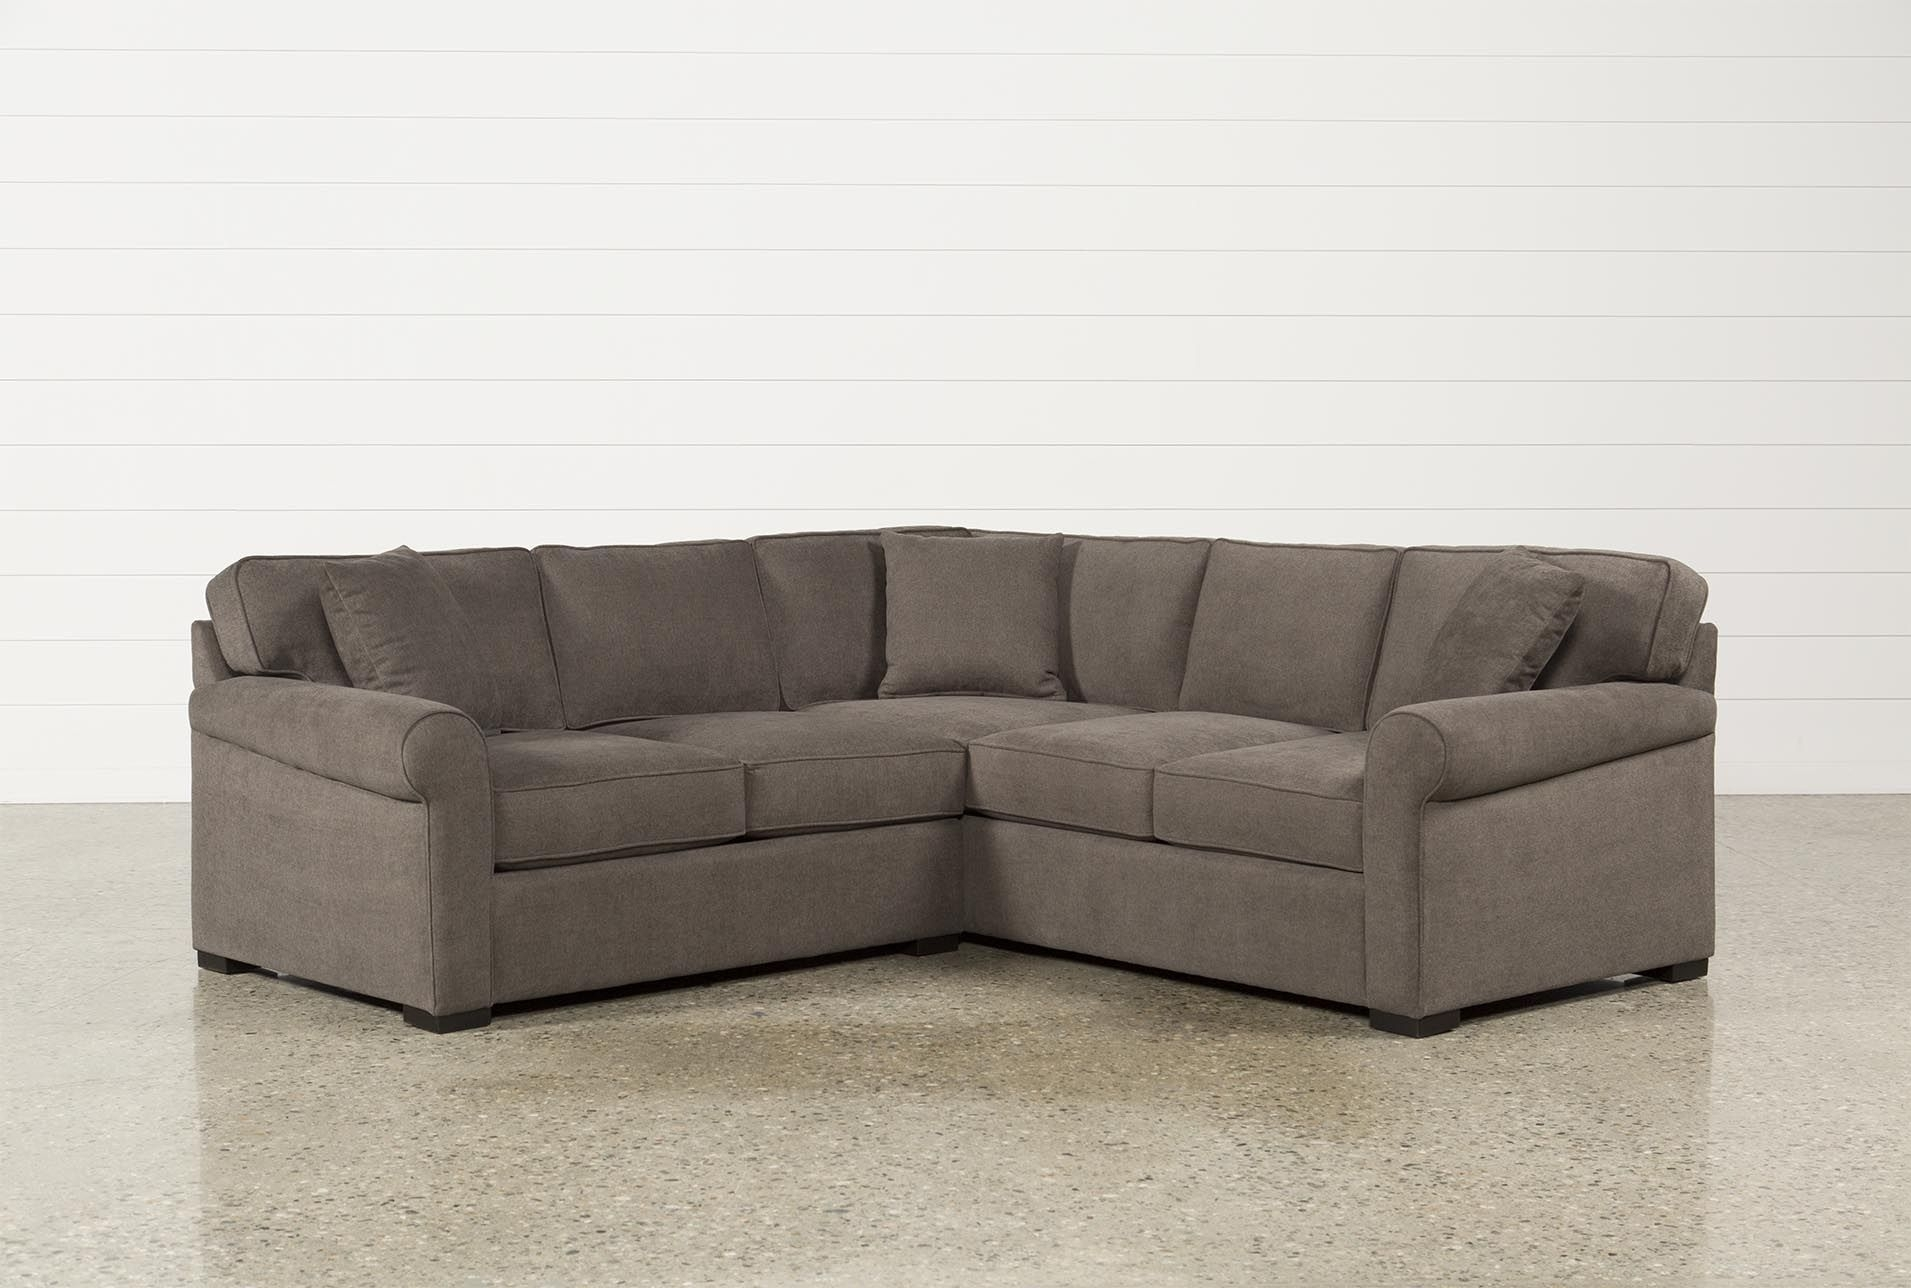 Elm Grande 2 Piece Sectional Throughout Turdur 2 Piece Sectionals With Laf Loveseat (Image 7 of 25)